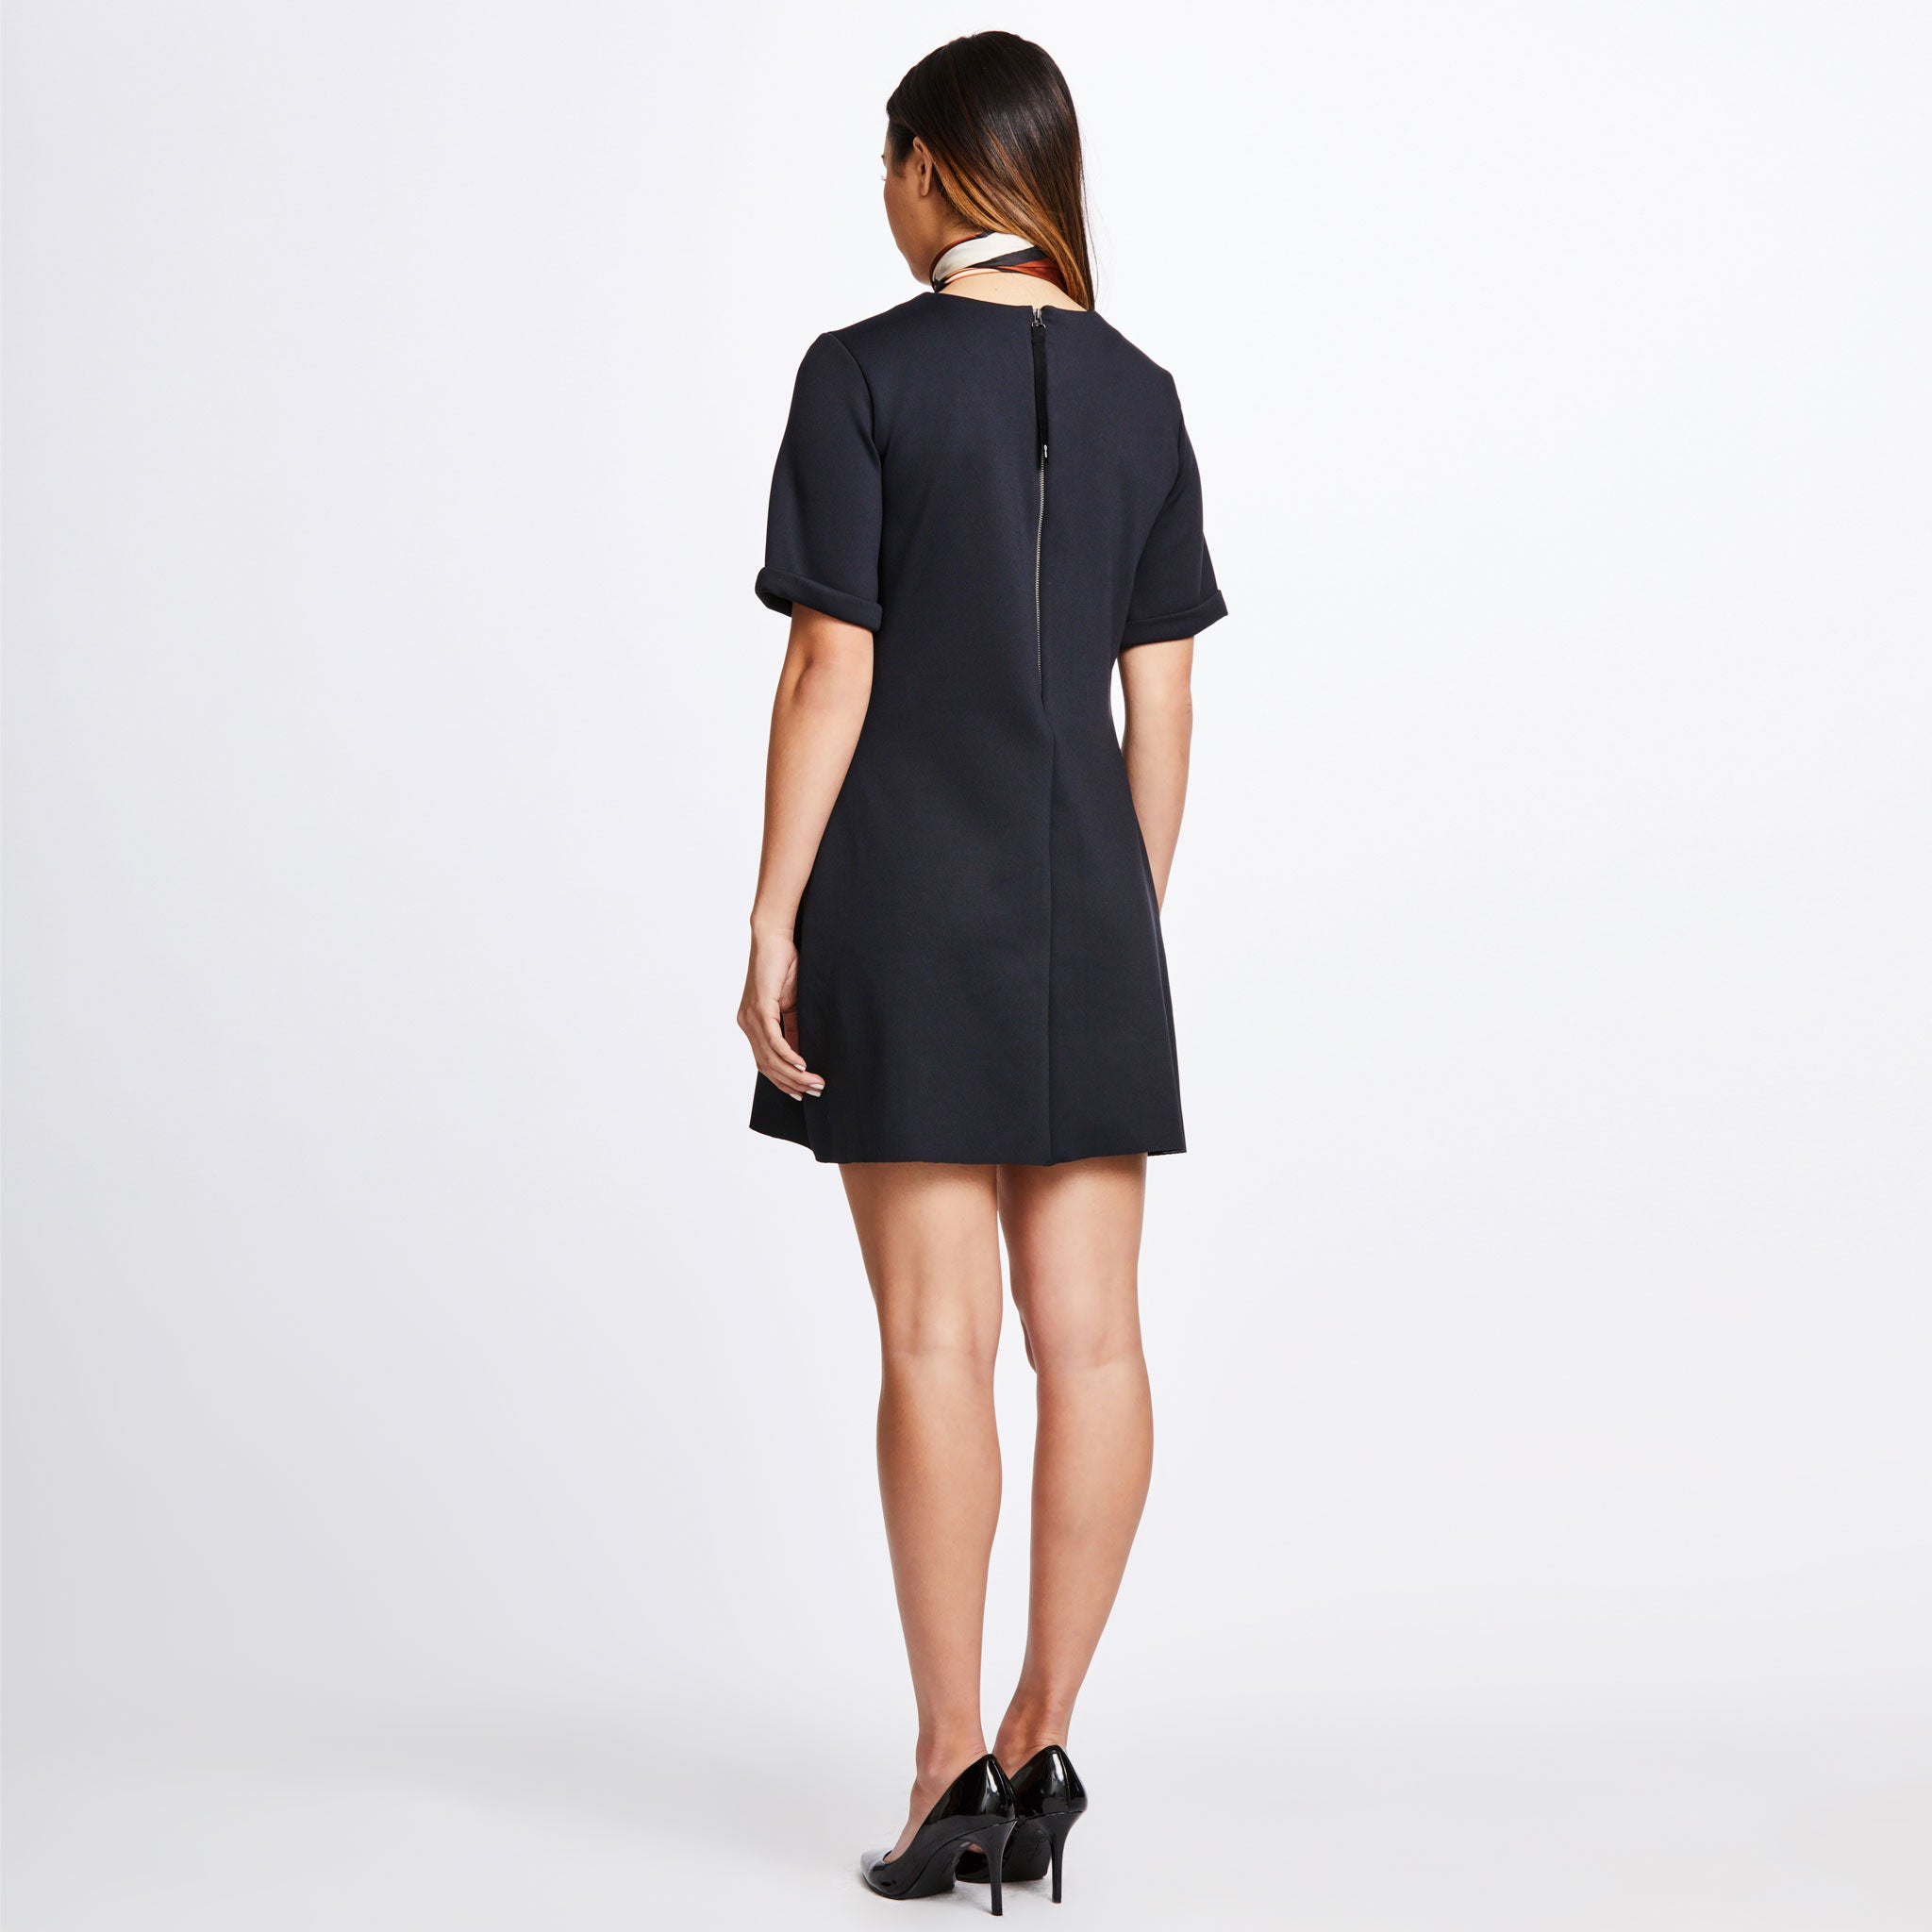 The Flossie Dress